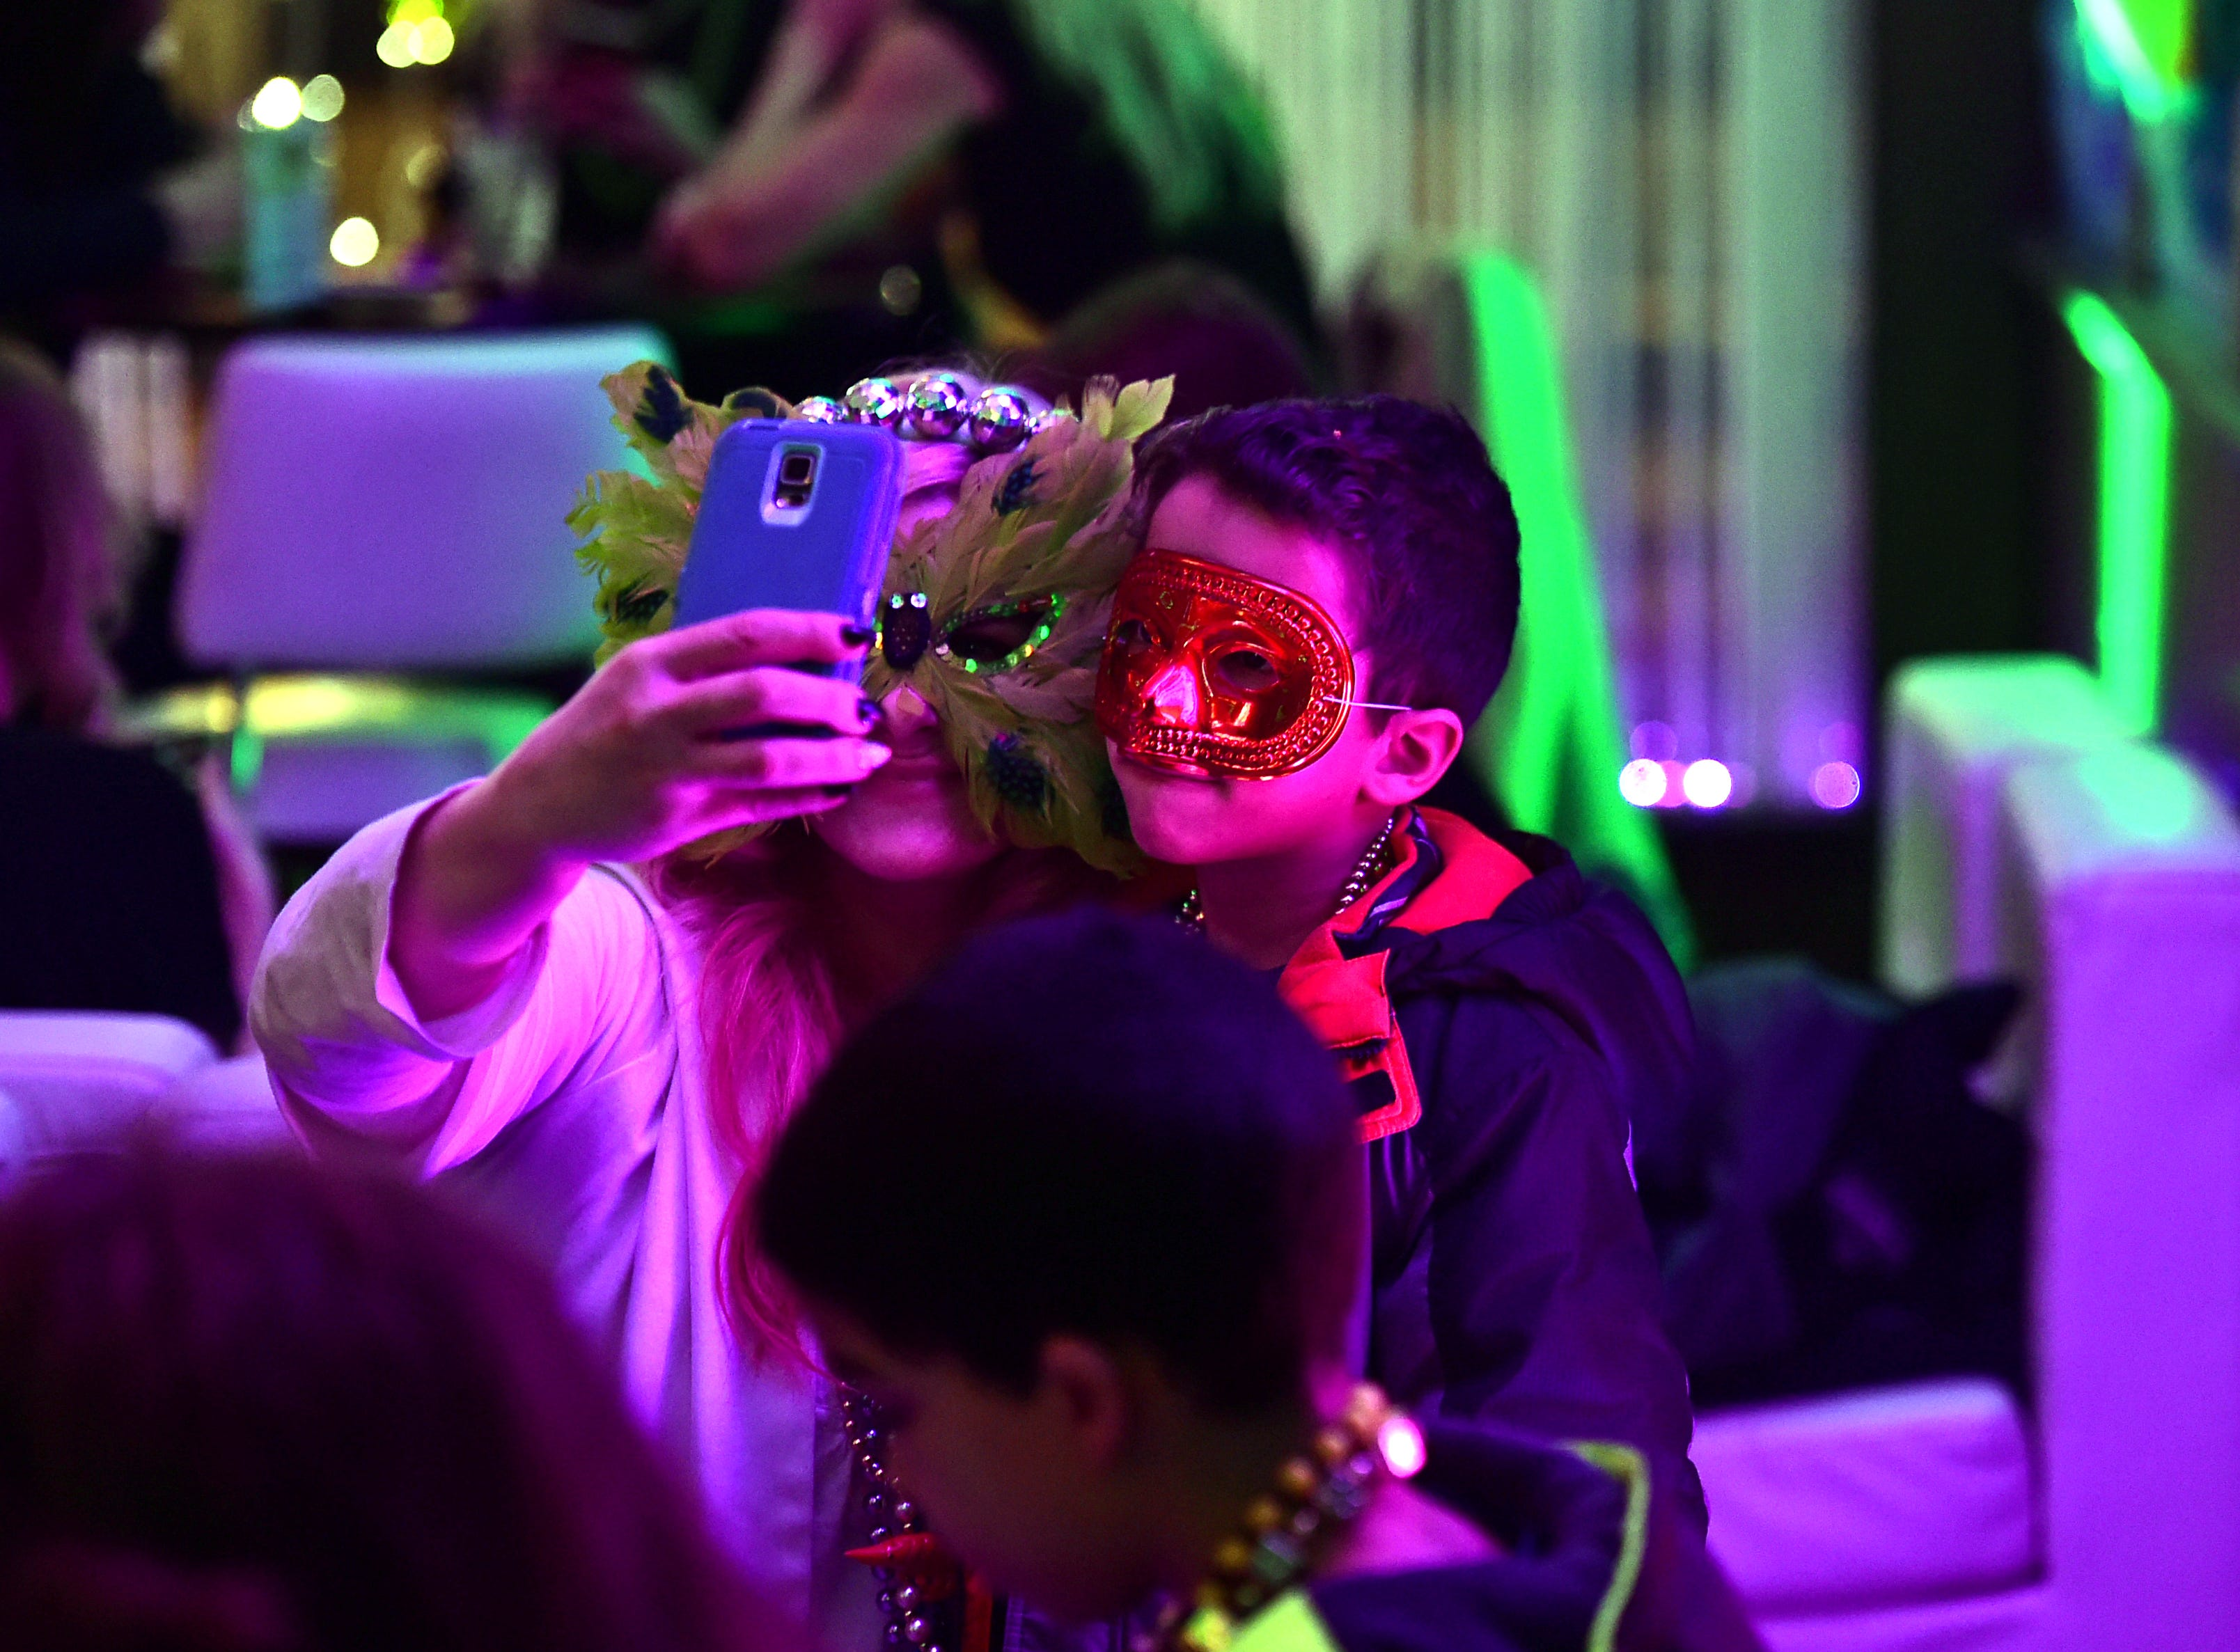 People wore masks to celebrate Fat Tuesday during 25th annual Rockin' Mardi Gras Celebration at the Lost Dog Cafe & Lounge in downtown Binghamton. March 5, 2019.